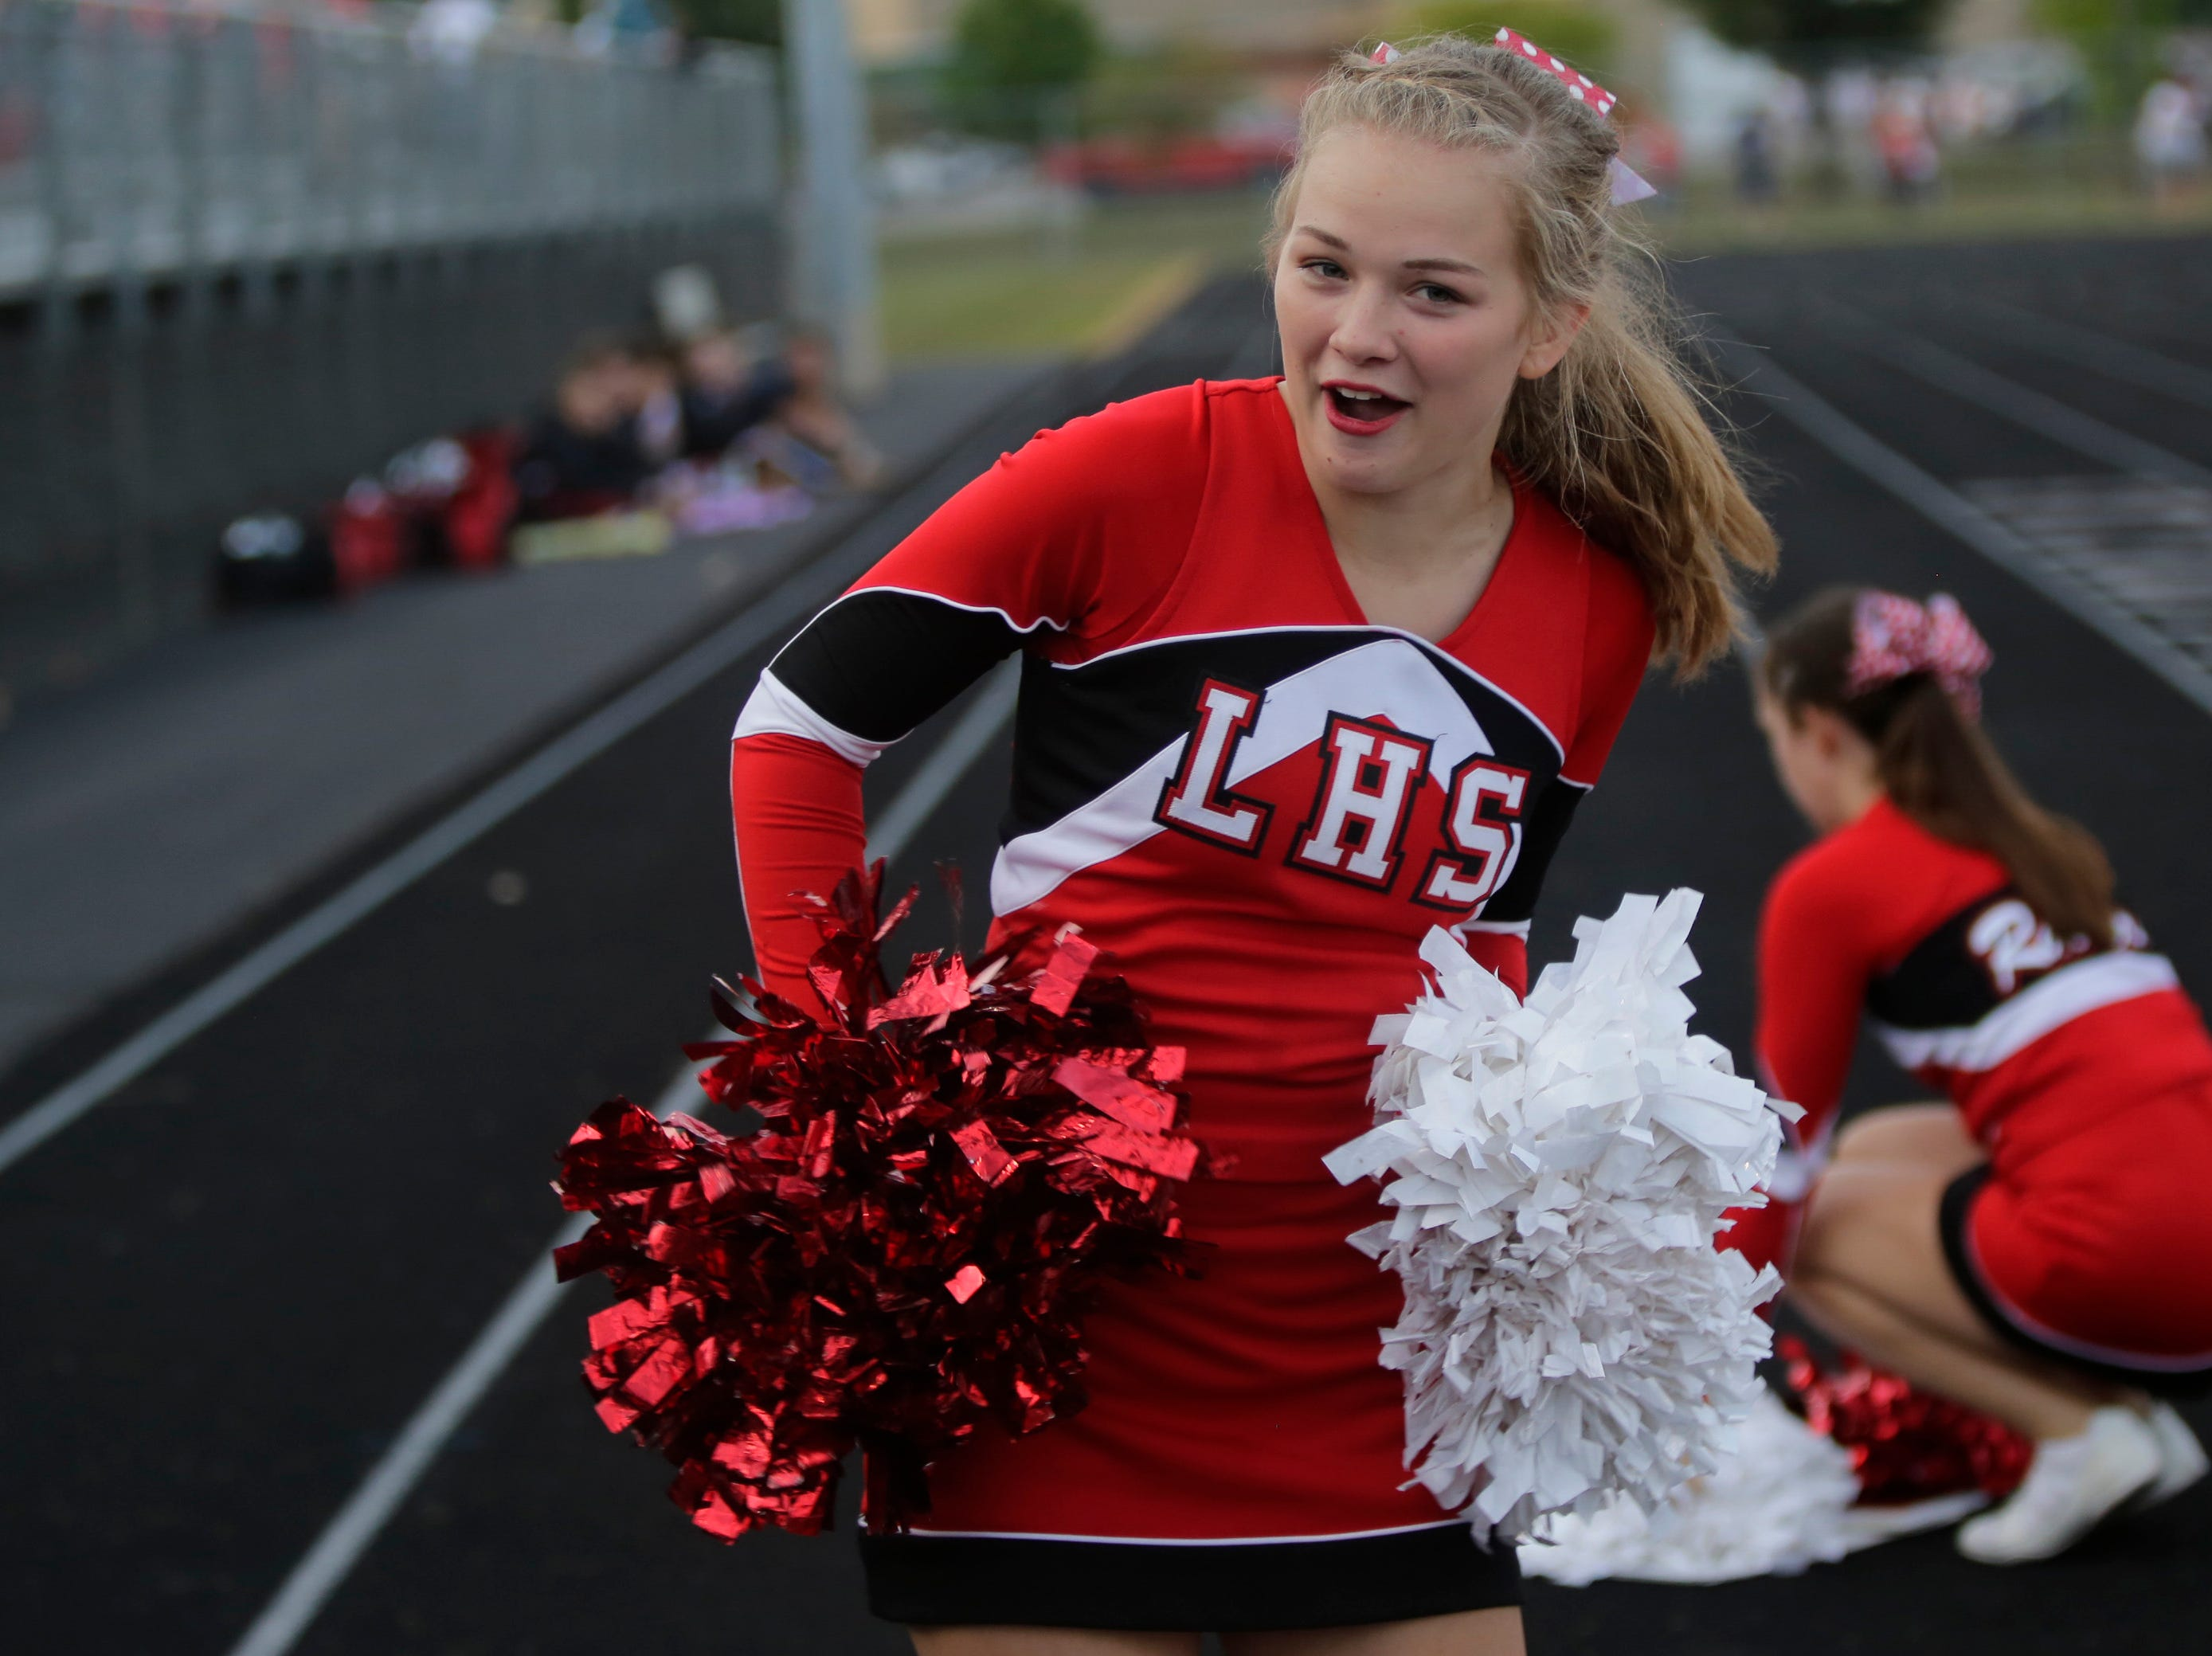 A Wisconsin Rapids cheer leader dances during a game between Wisconsin Rapids and Kimberly at Wisconsin Rapids Lincoln High School Thursday, August 23, 2018.